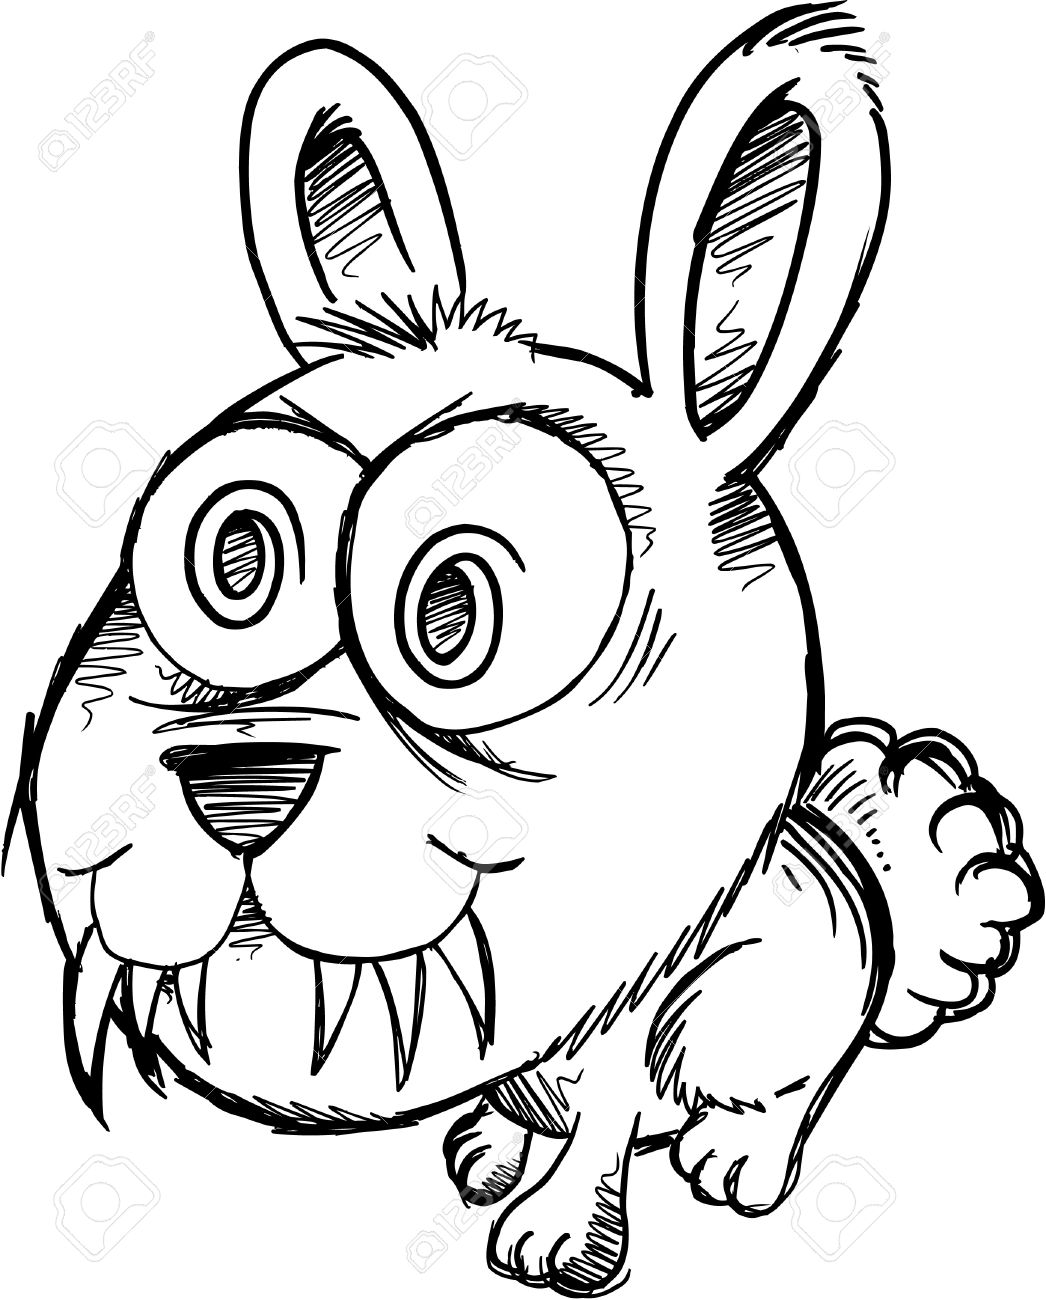 how to draw a rabbit face rabbit face drawing at getdrawings free download rabbit draw to how a face